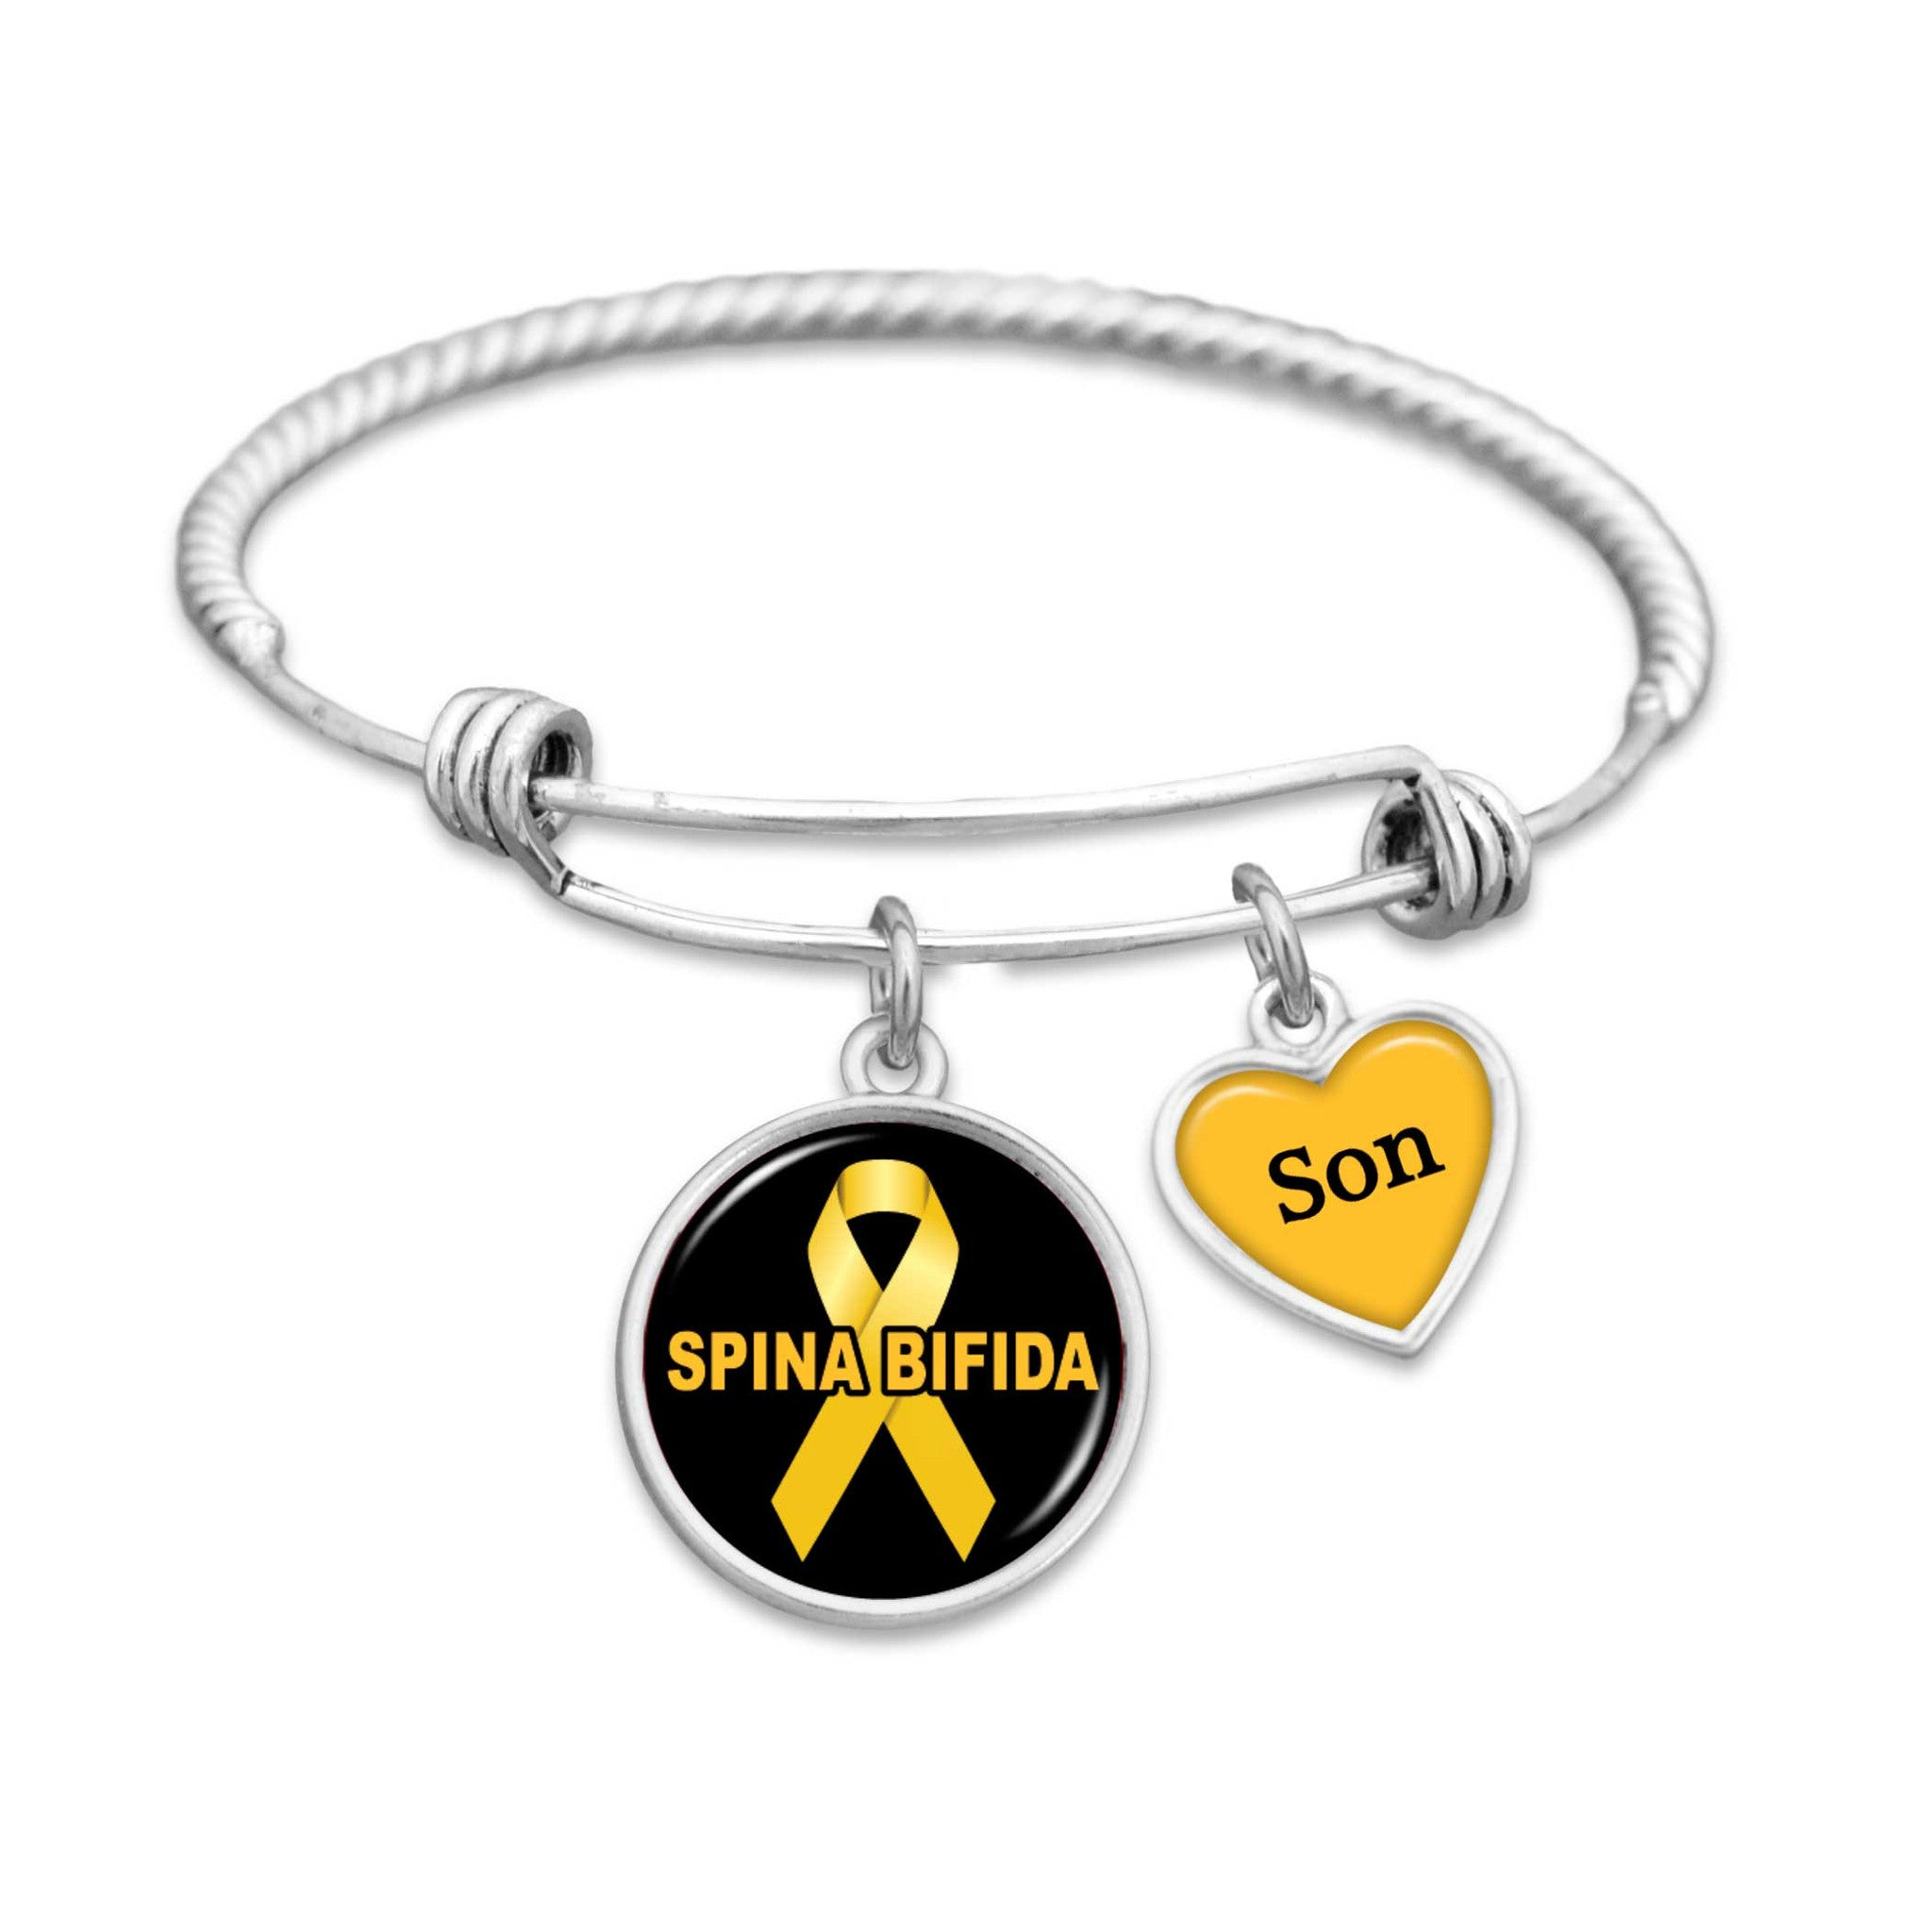 wristband content sb spina bifida bracelet uploads of index wp